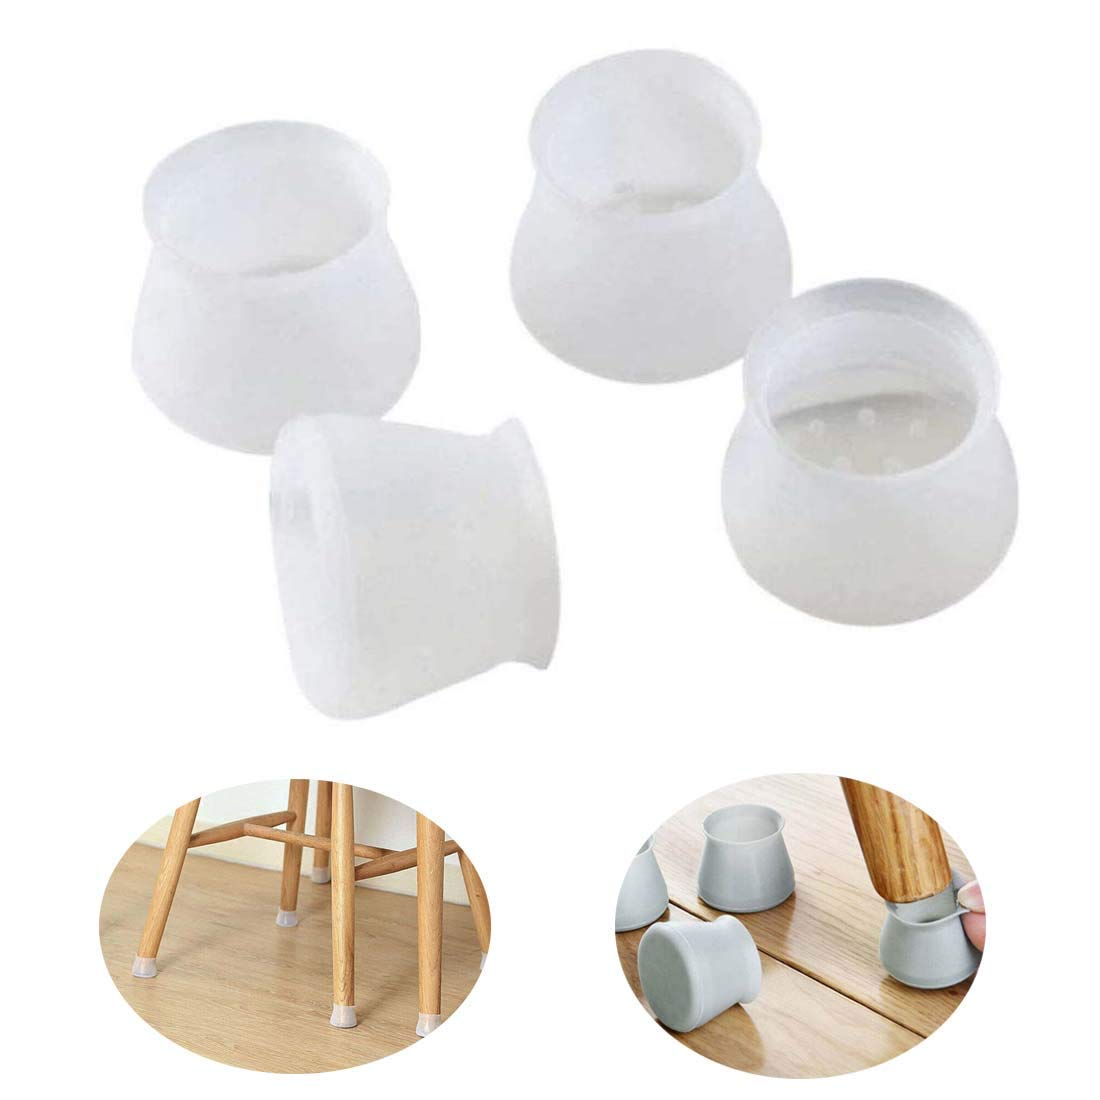 32 PCS Silicon Furniture Leg Protection Cover Table Feet Chair Leg Caps Feet Pads Floor Protector